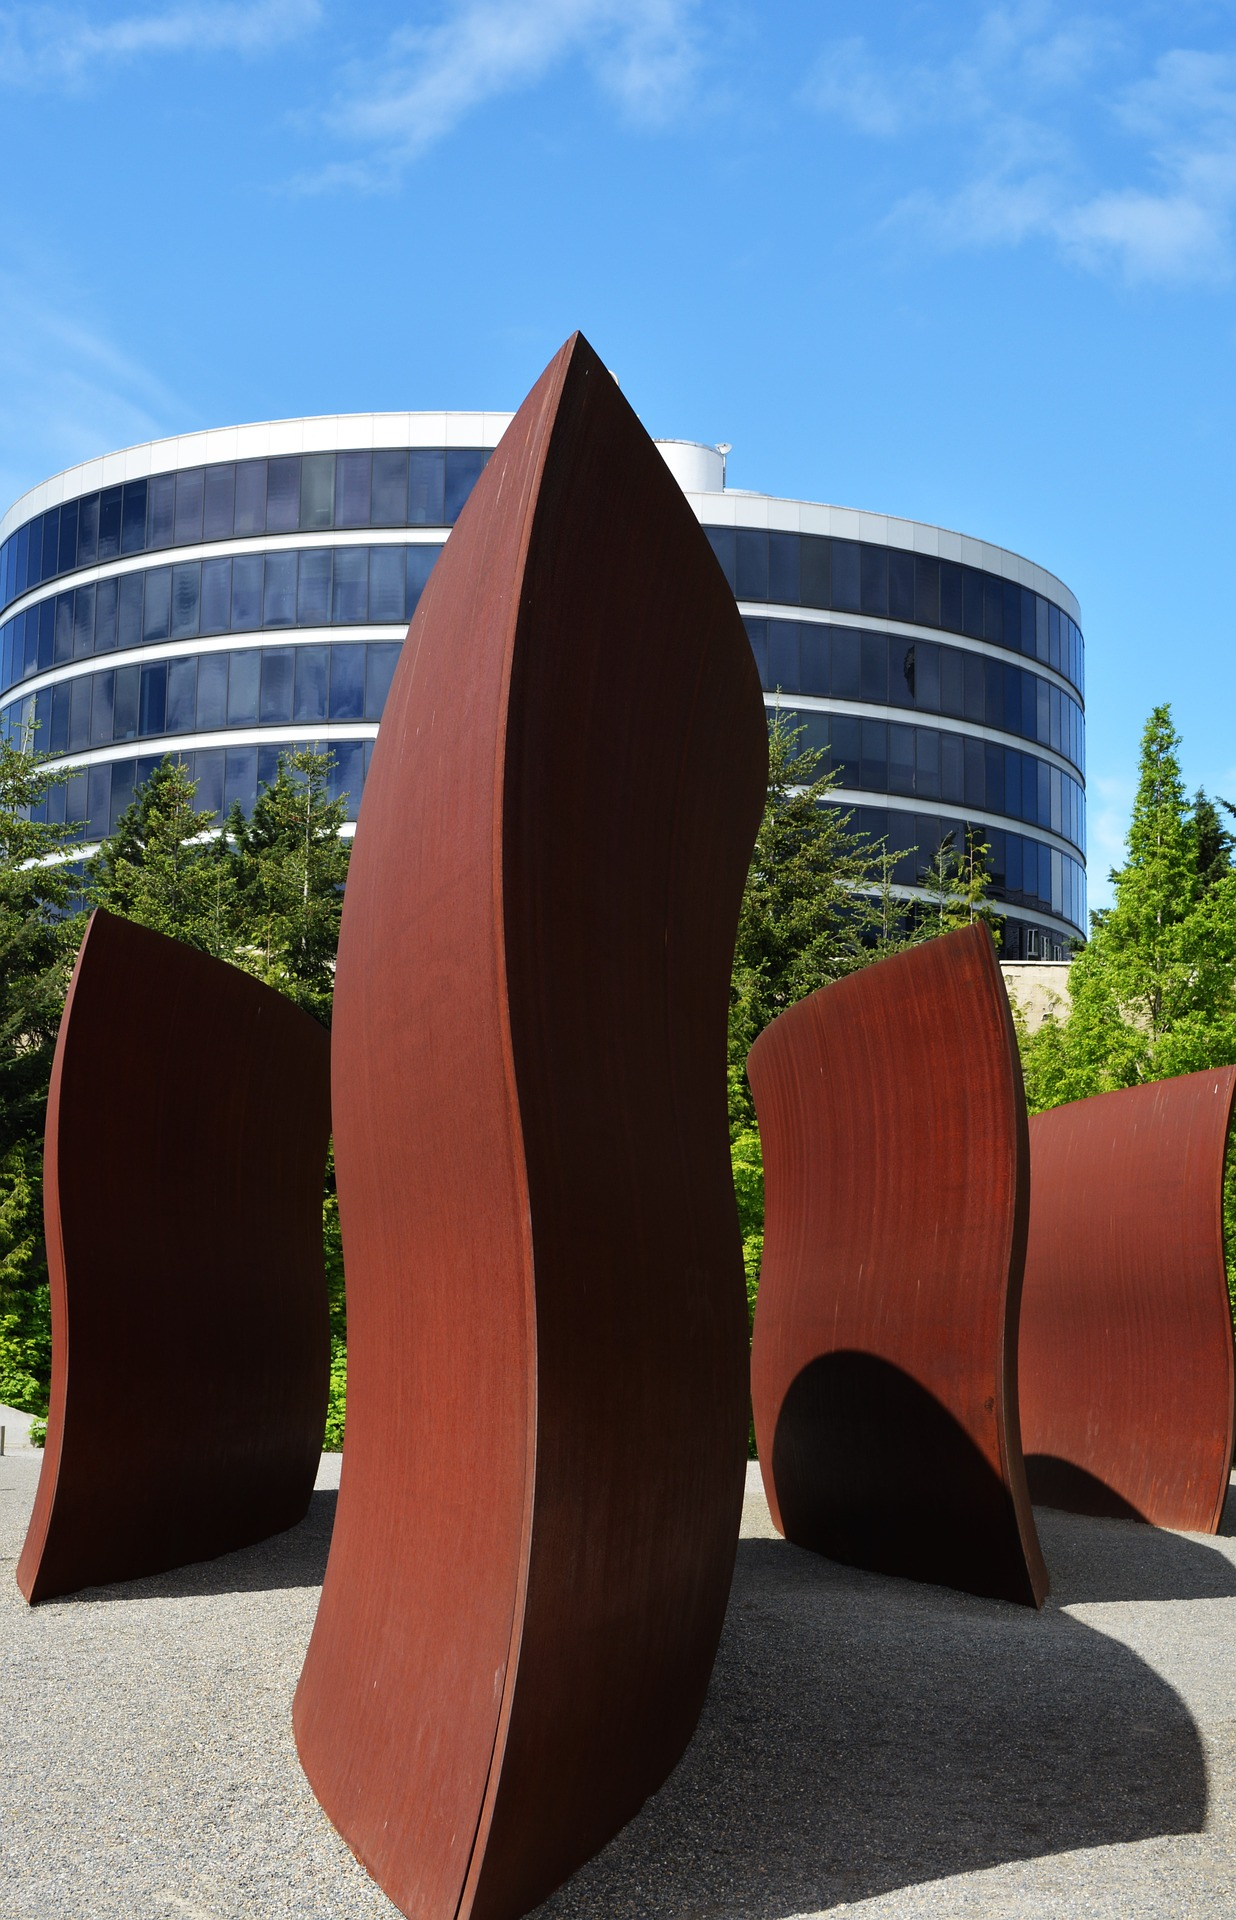 Sculpture in the Olympic Sculpture Park, Seattle, Washington